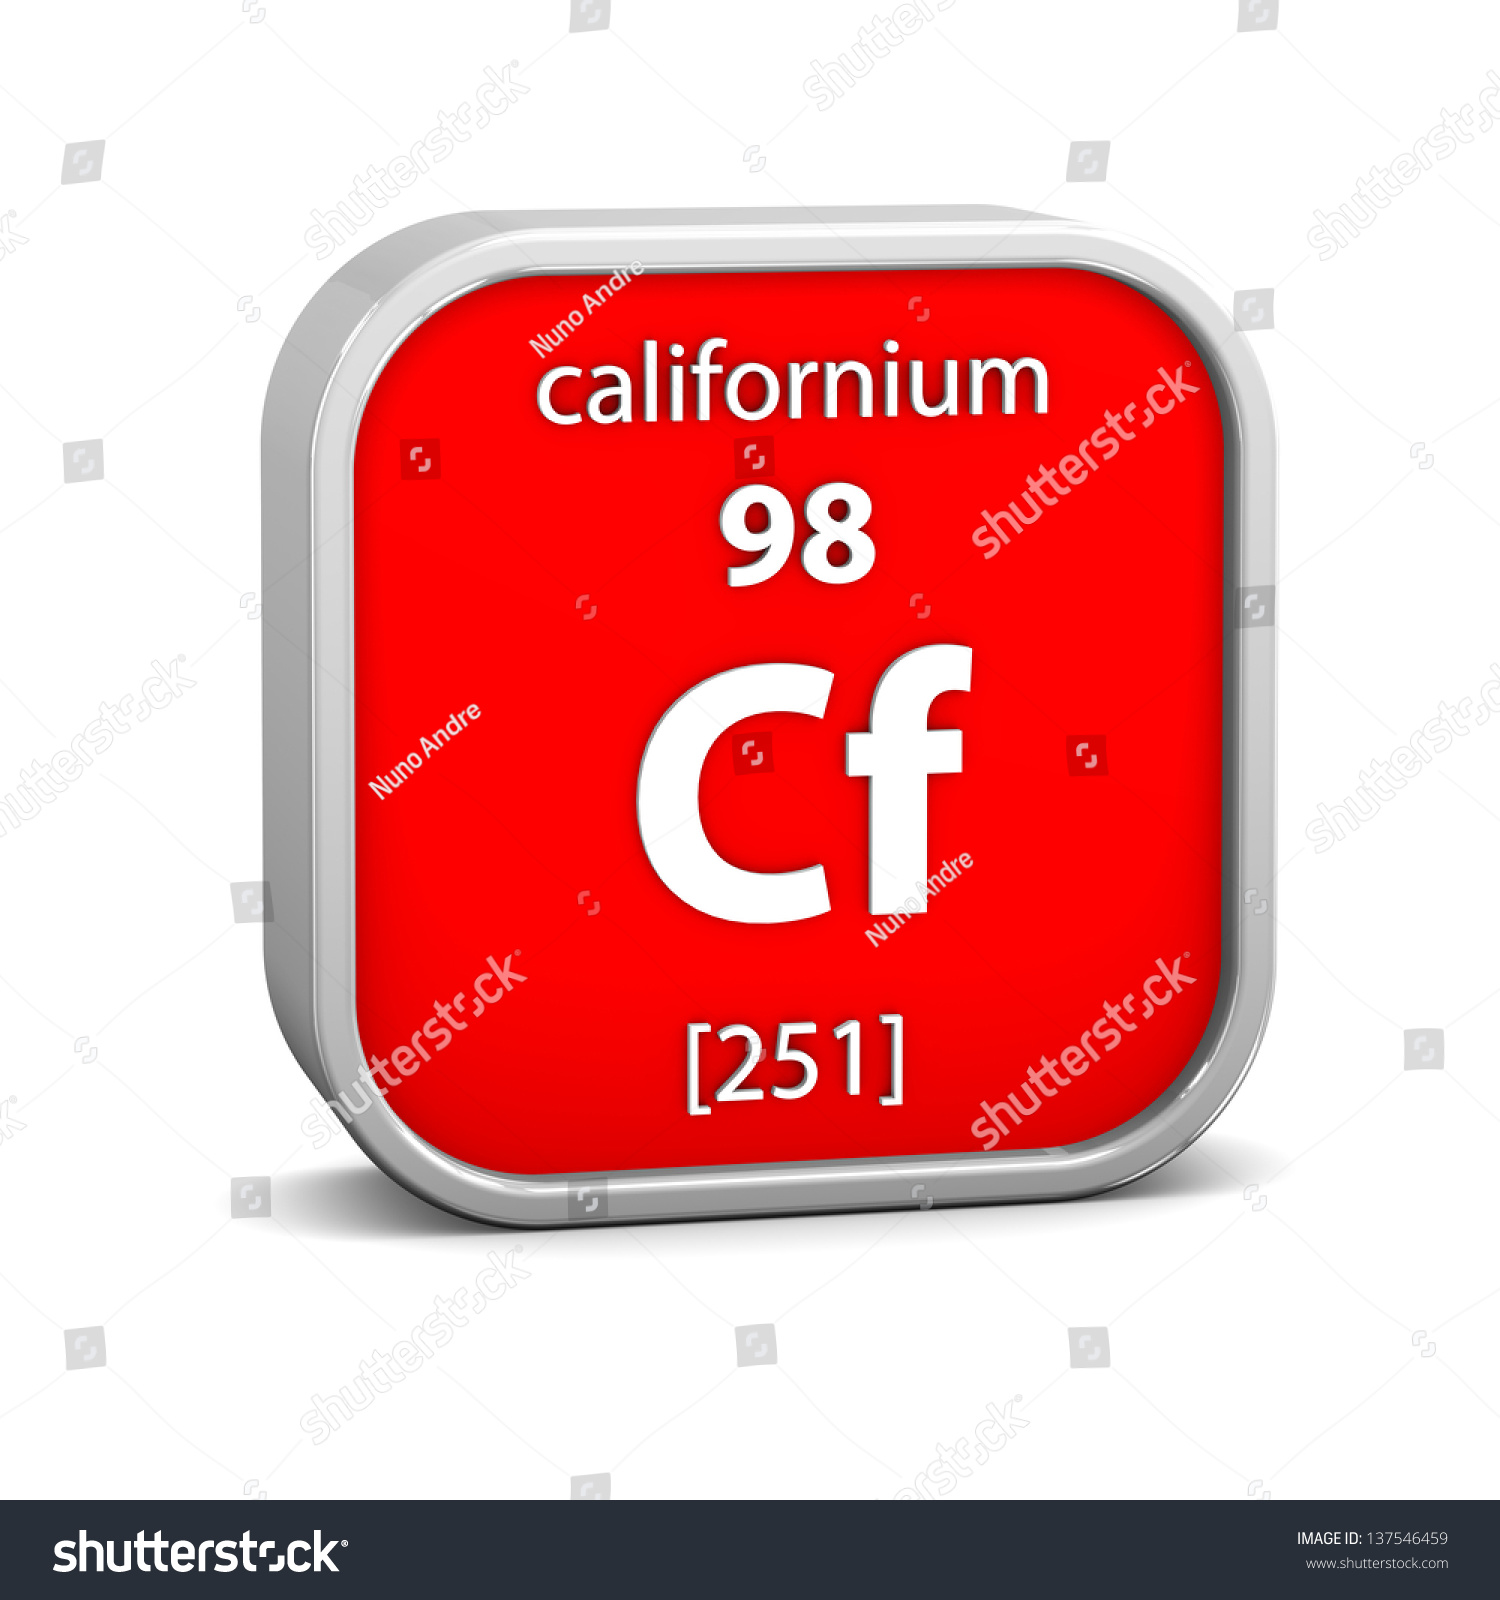 Californium material on periodic table part stock illustration californium material on the periodic table part of a series gamestrikefo Images